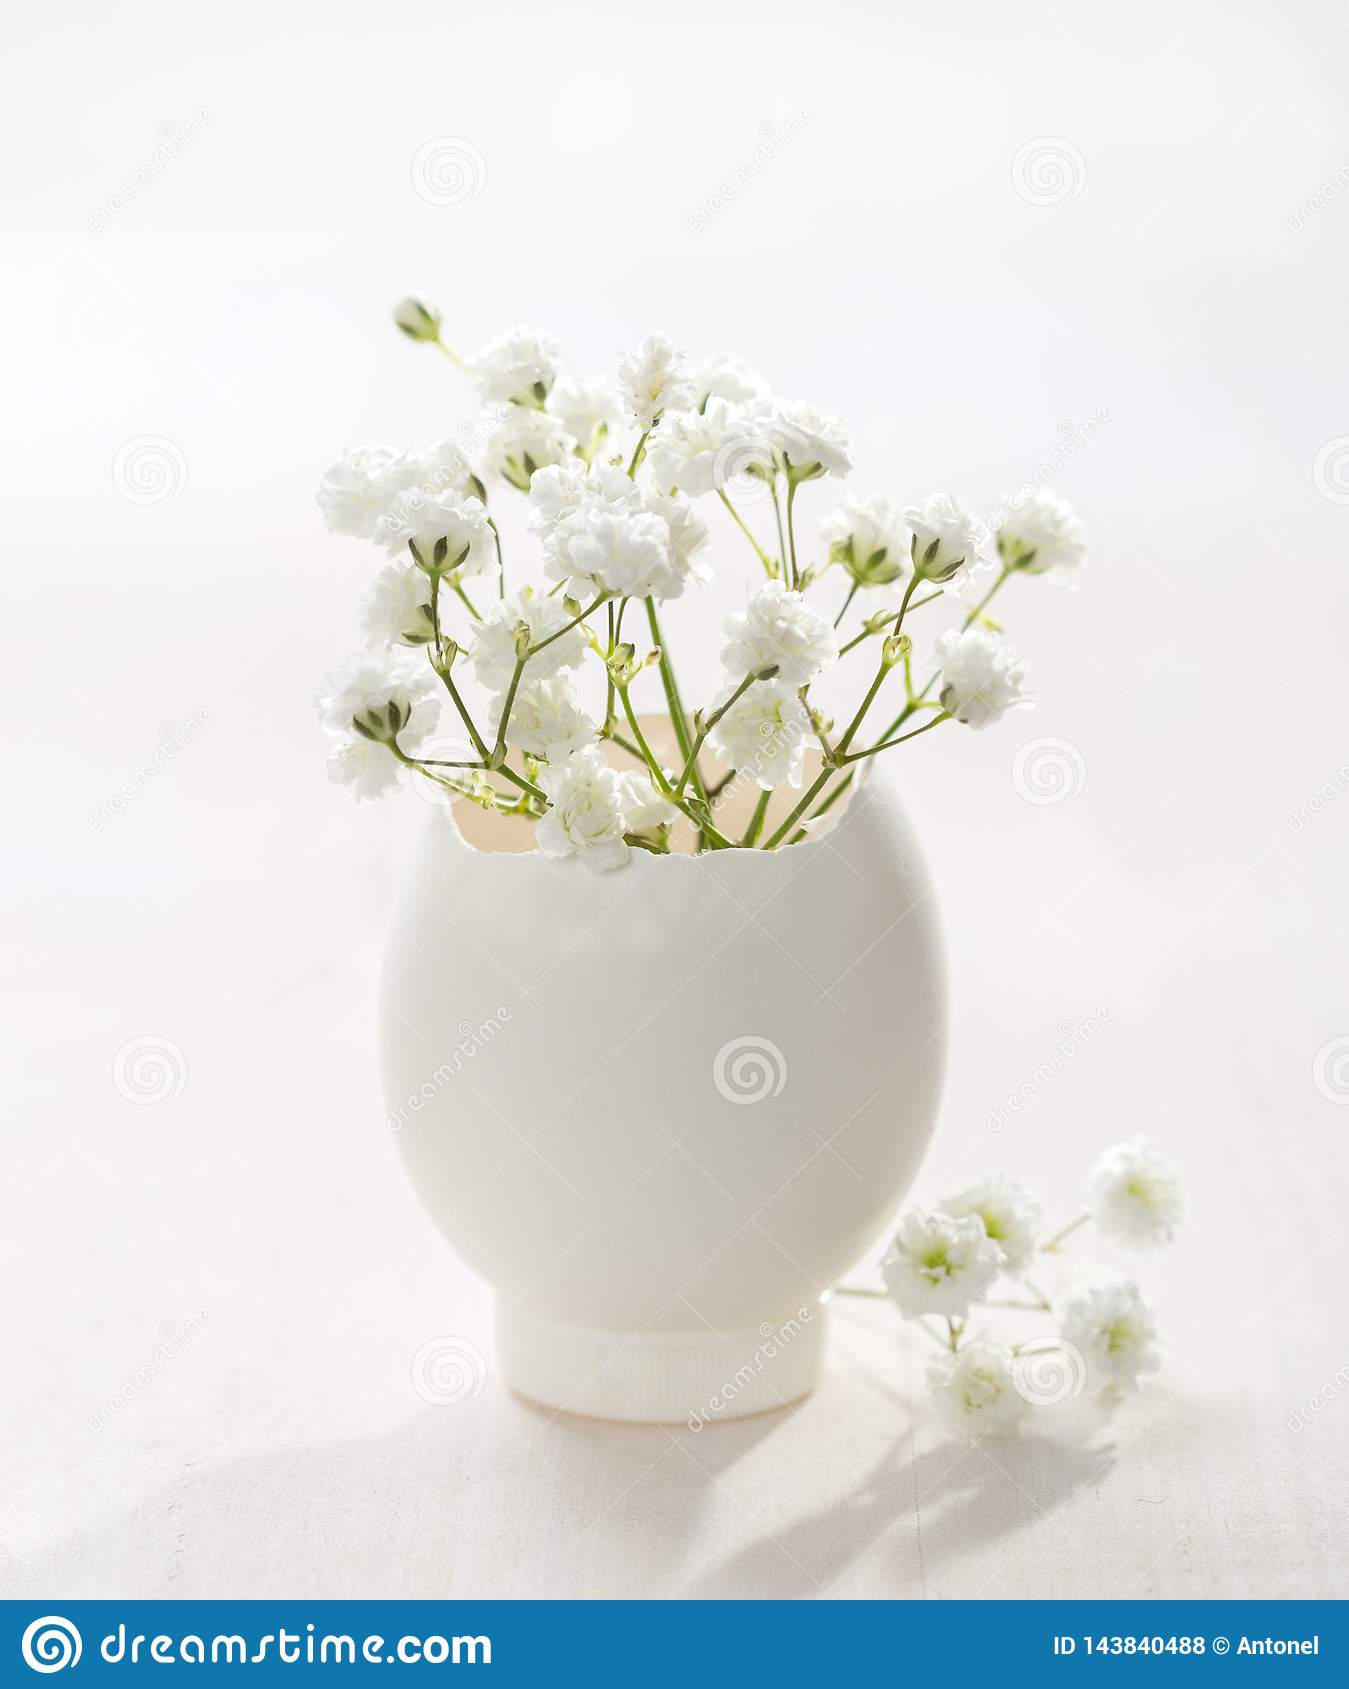 Bunch of white Baby`s Breath flowers Gypsophila in egg shell on the white wooden plank. Shallow depth of field, focus on near f